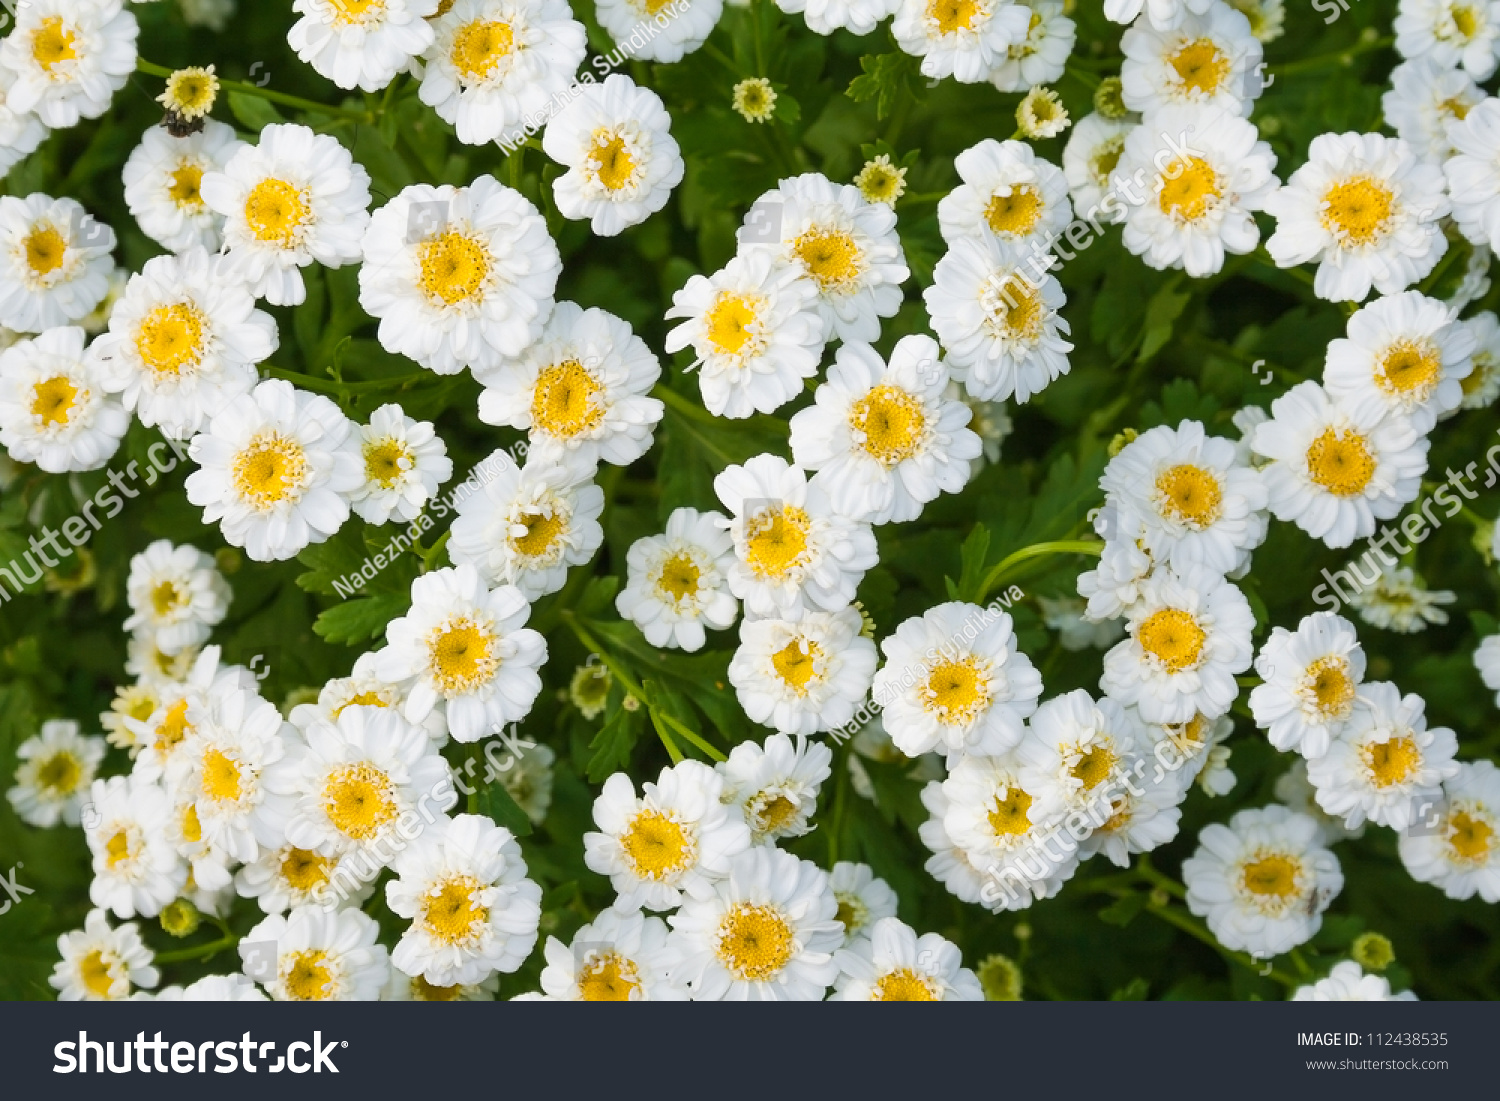 Closeup Flower Bed White Flowers Stock Photo Edit Now 112438535